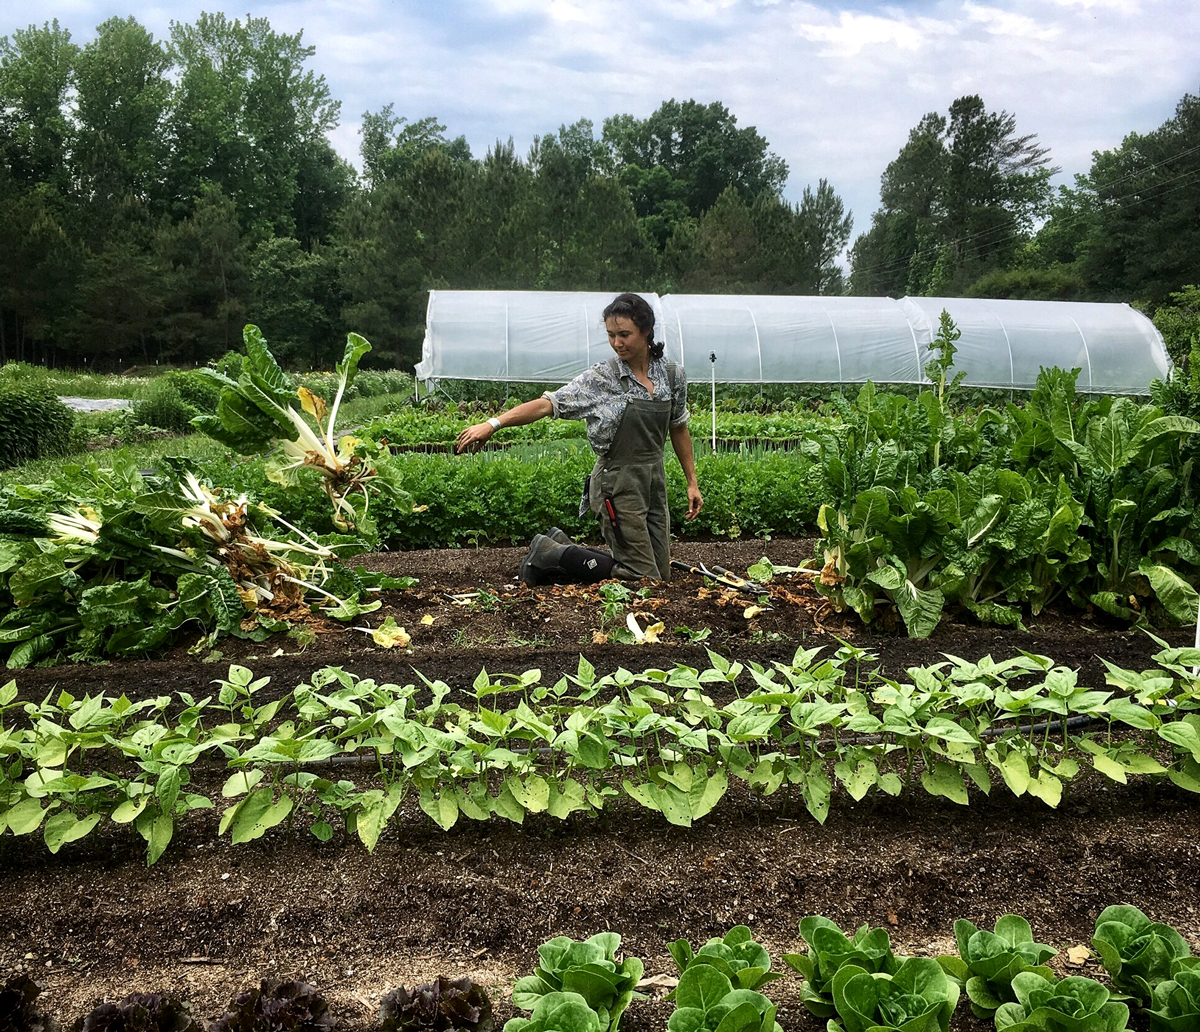 vera clearing chard ten mothers farm